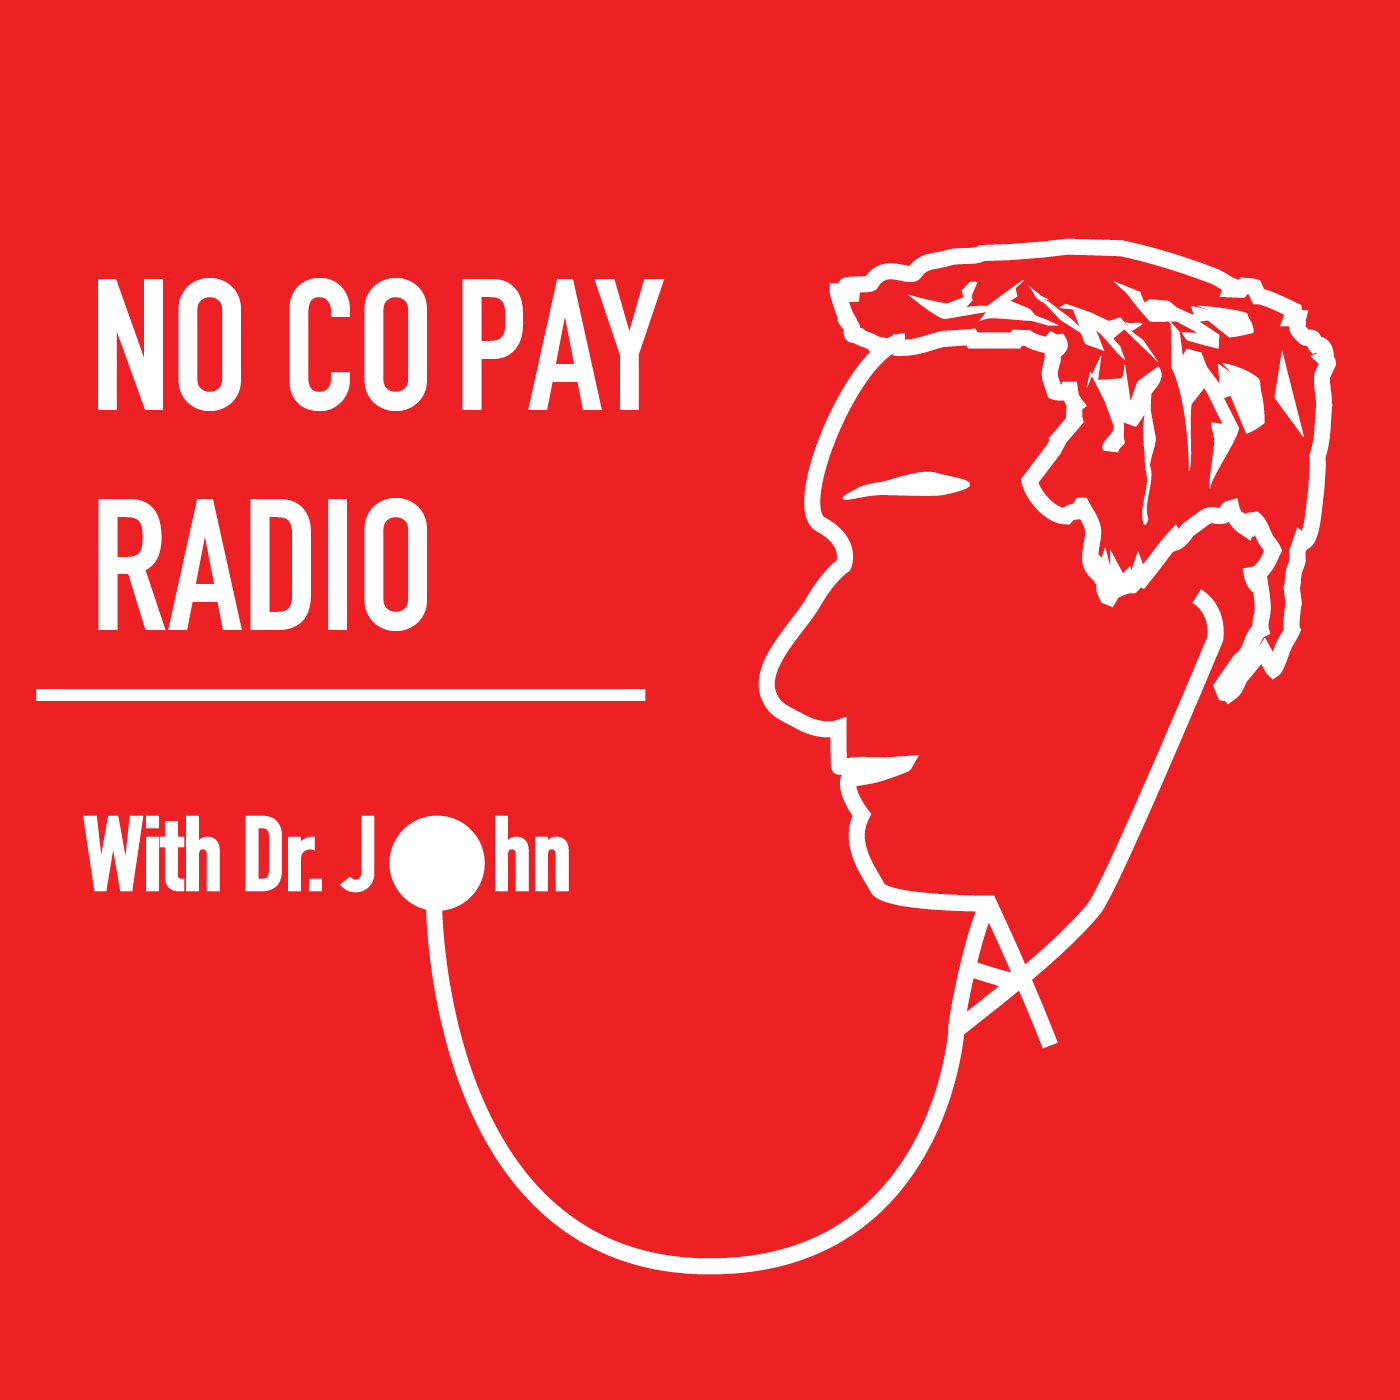 No Copay Radio